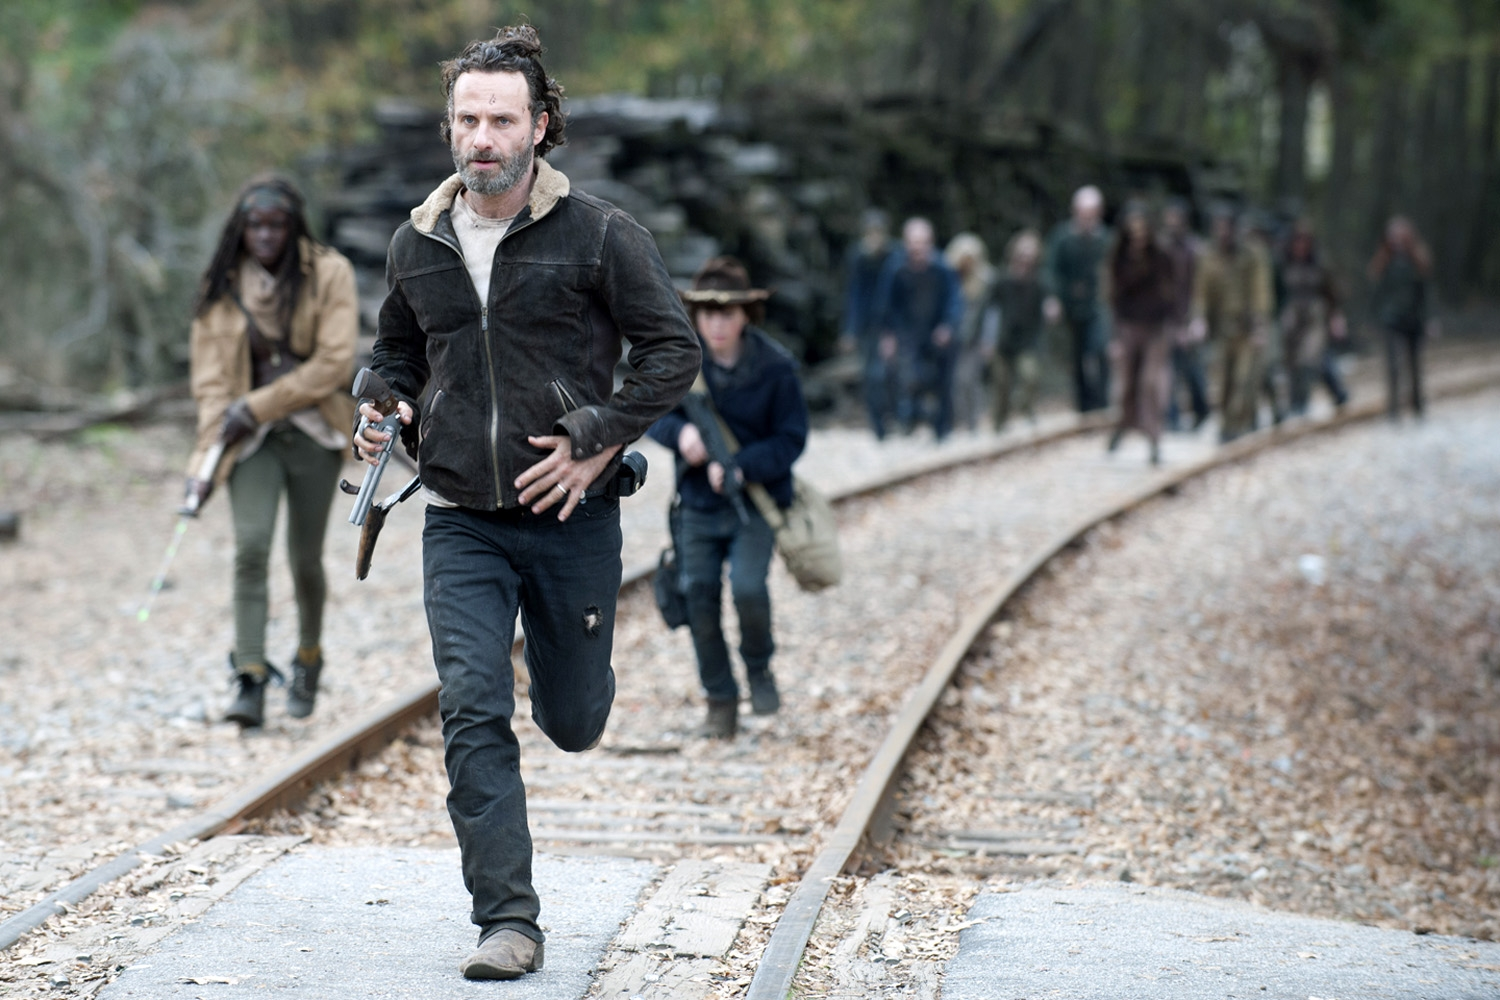 The Walking Dead: Andrew Lincoln, Chandler Riggs e Danai Gurira in fuga dai morti viventi nell'episodio A